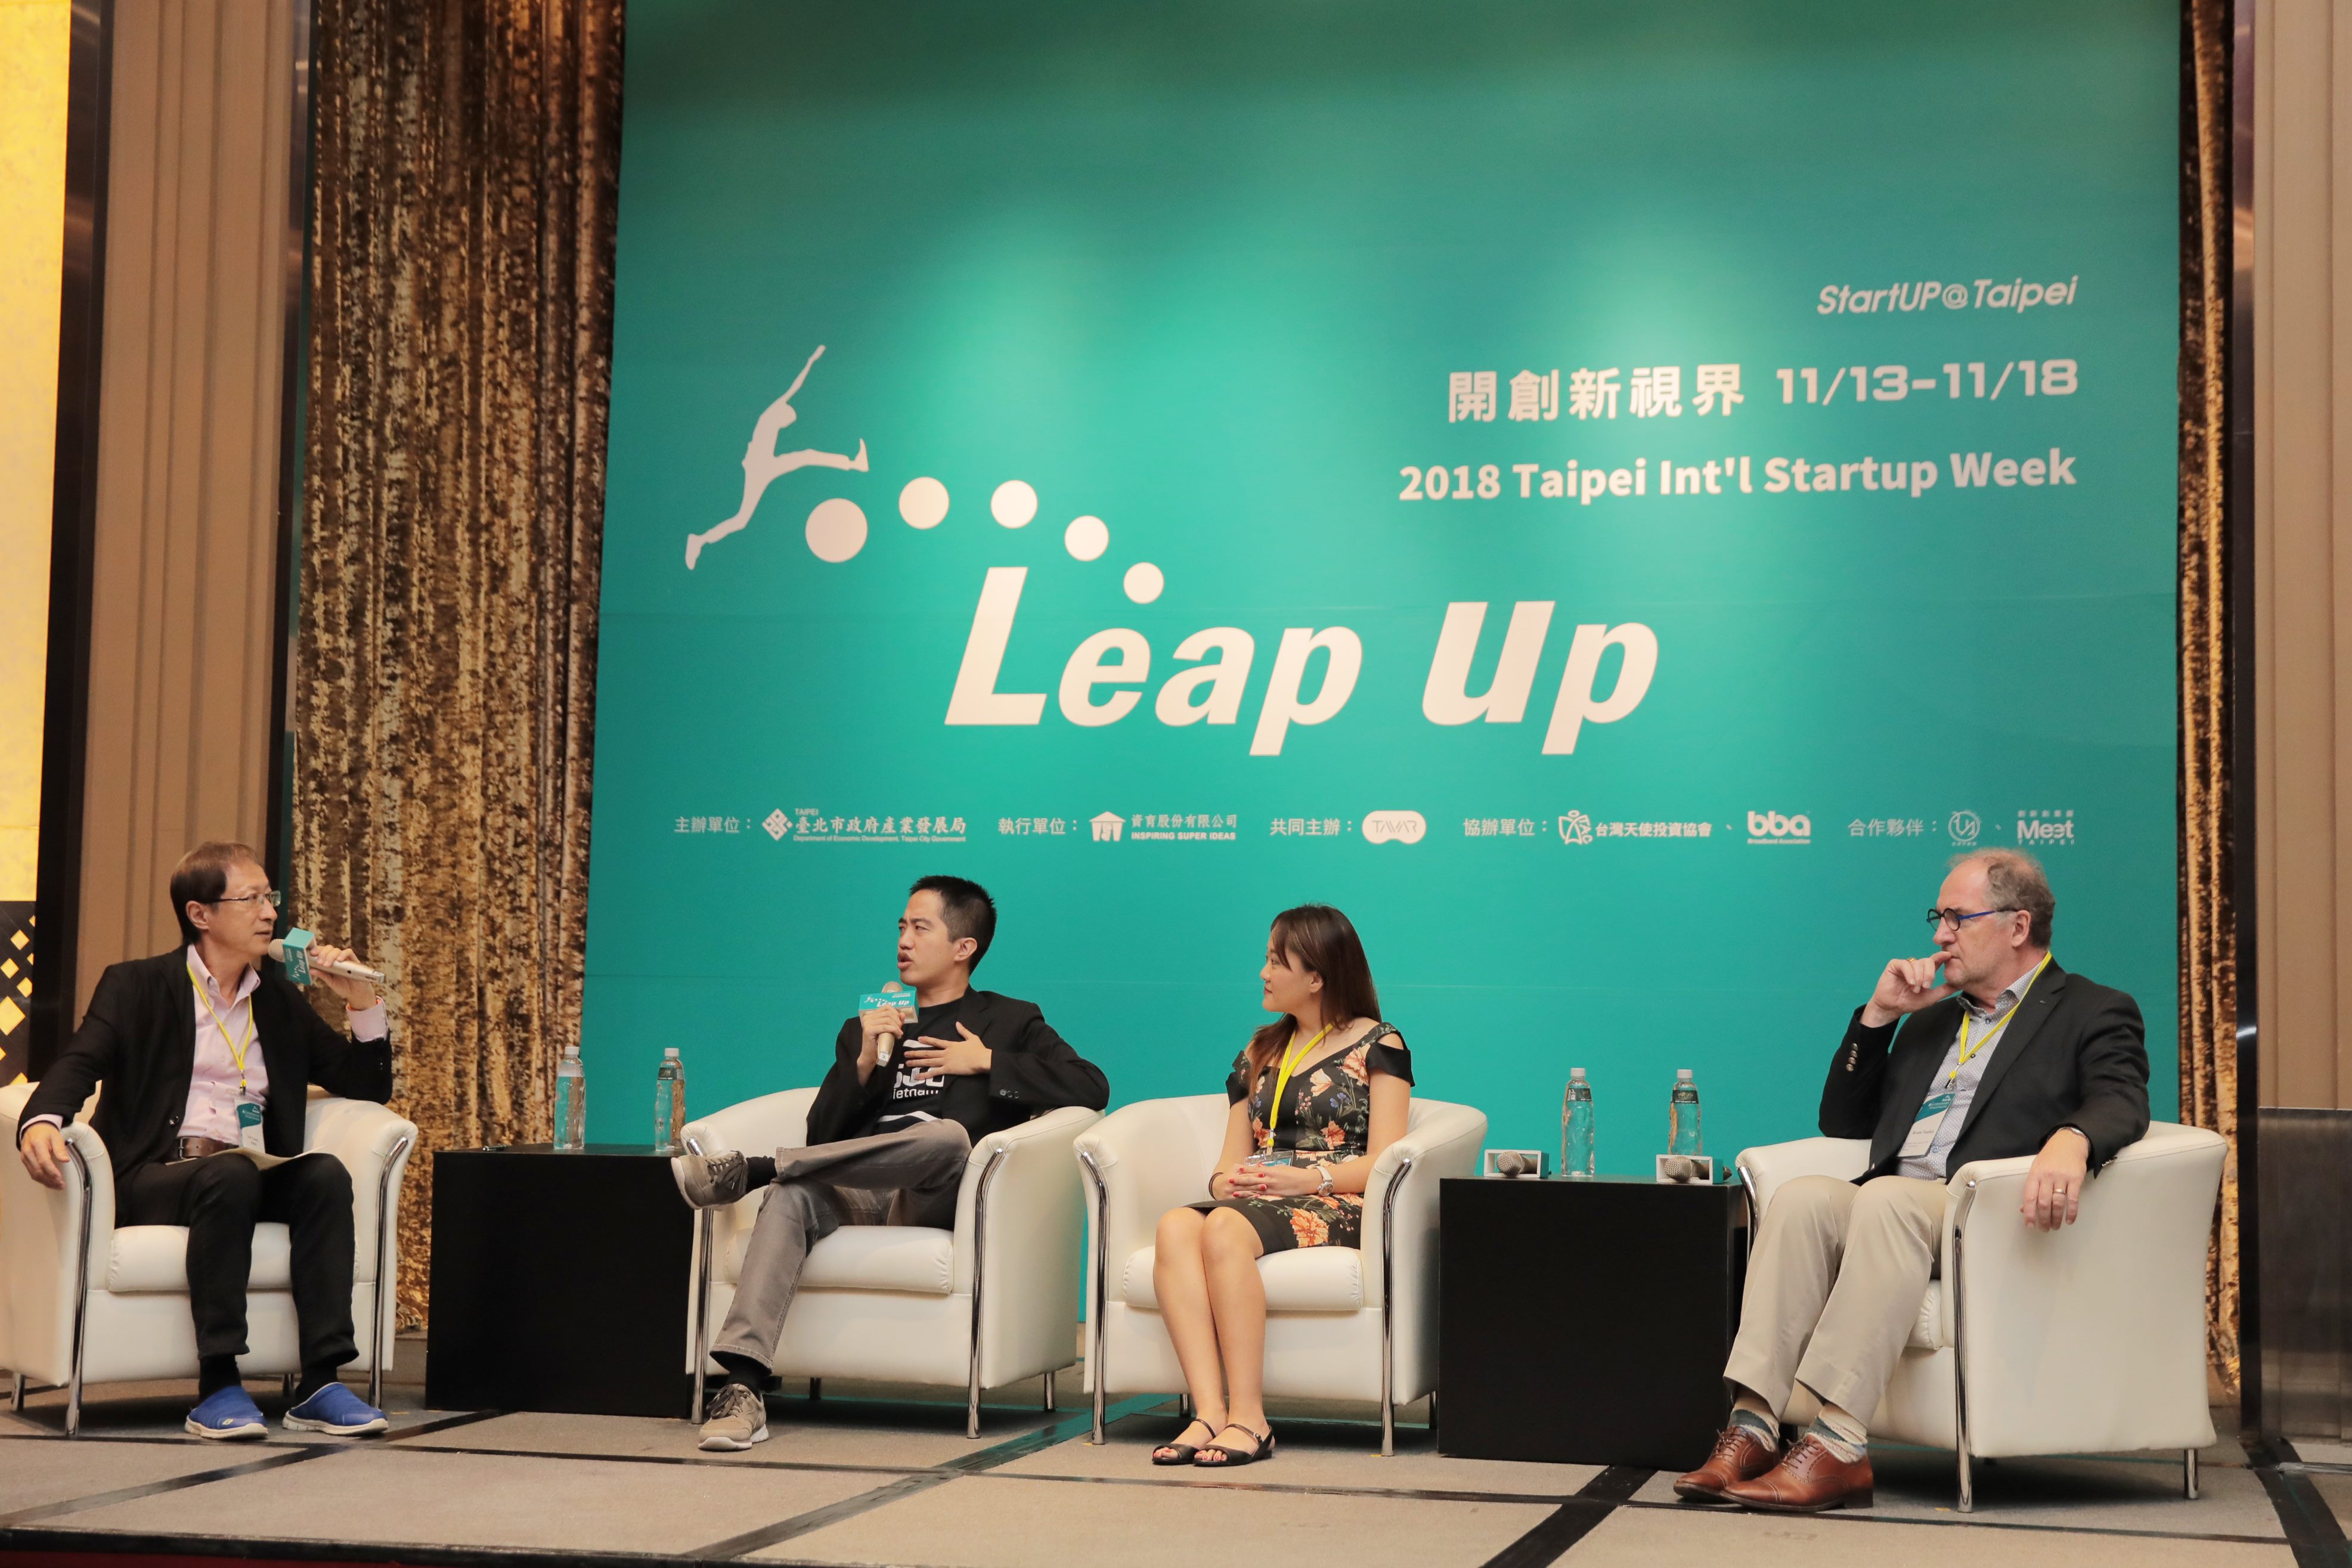 Renowned entrepreneurship facilitators were invited to share the latest entrepreneurship trends at the StartUP@Taipei Global Linkage Forum in a lively discussion. Data source: Department of Economic Development, Taipei City Government